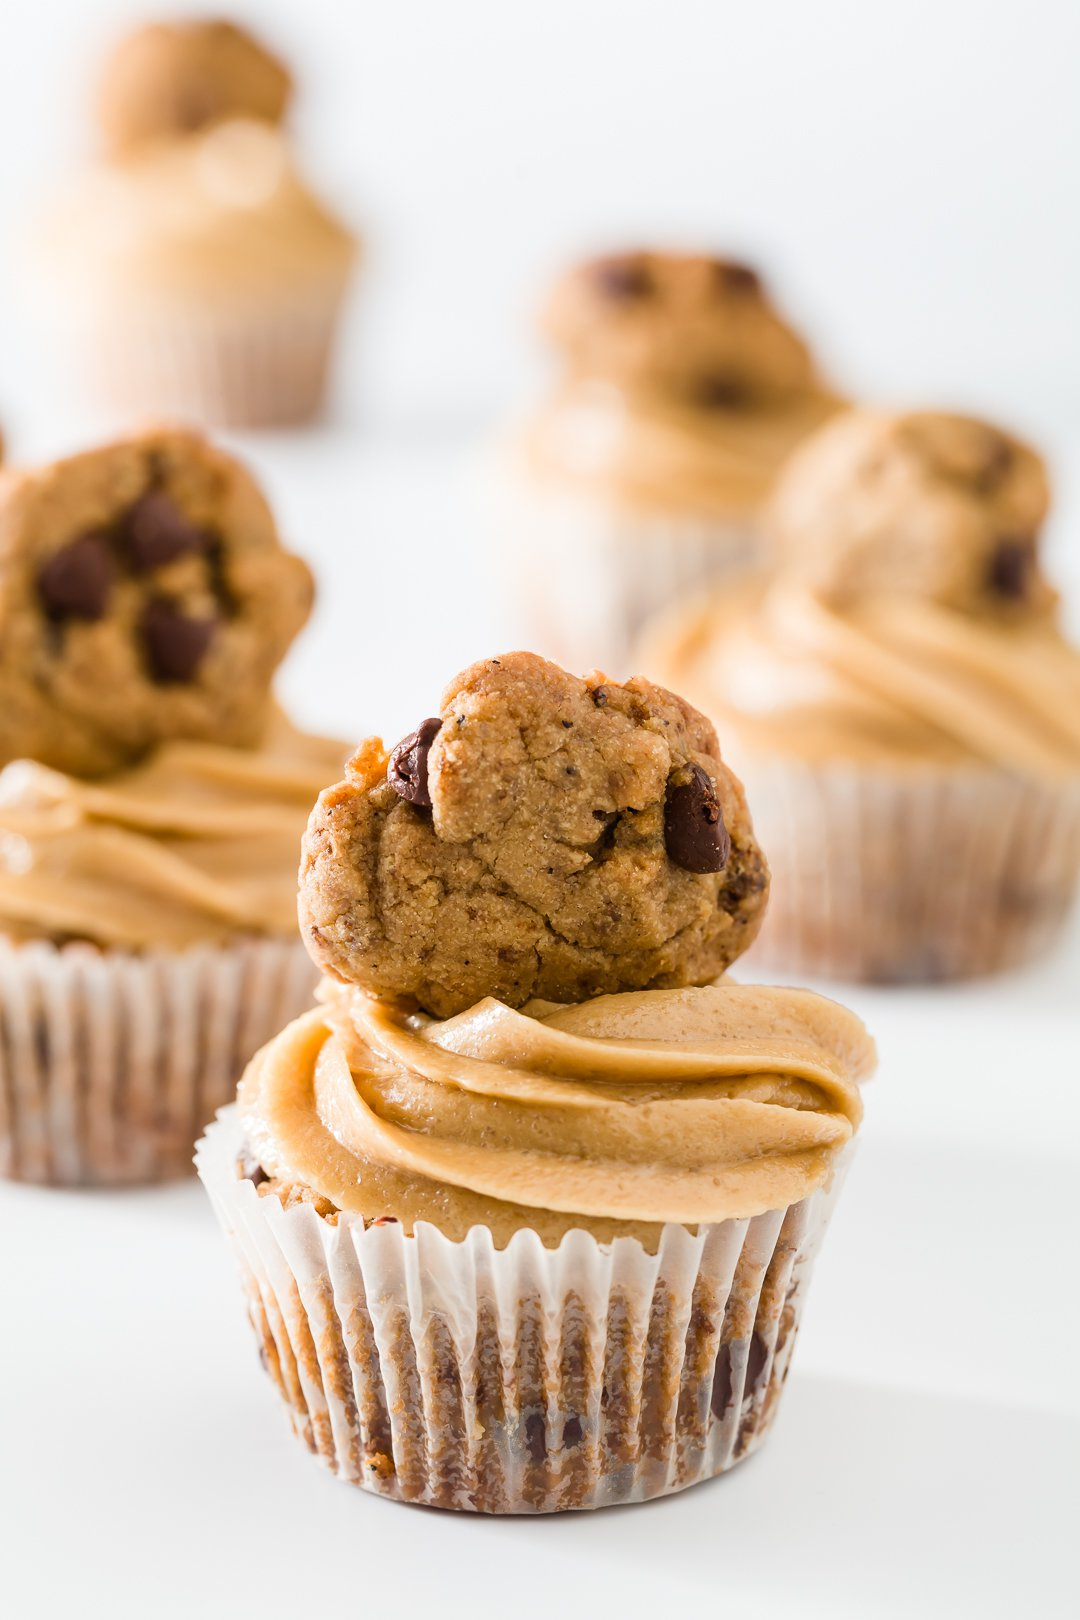 Cookie Cupcakes with Cookie Dough Frosting